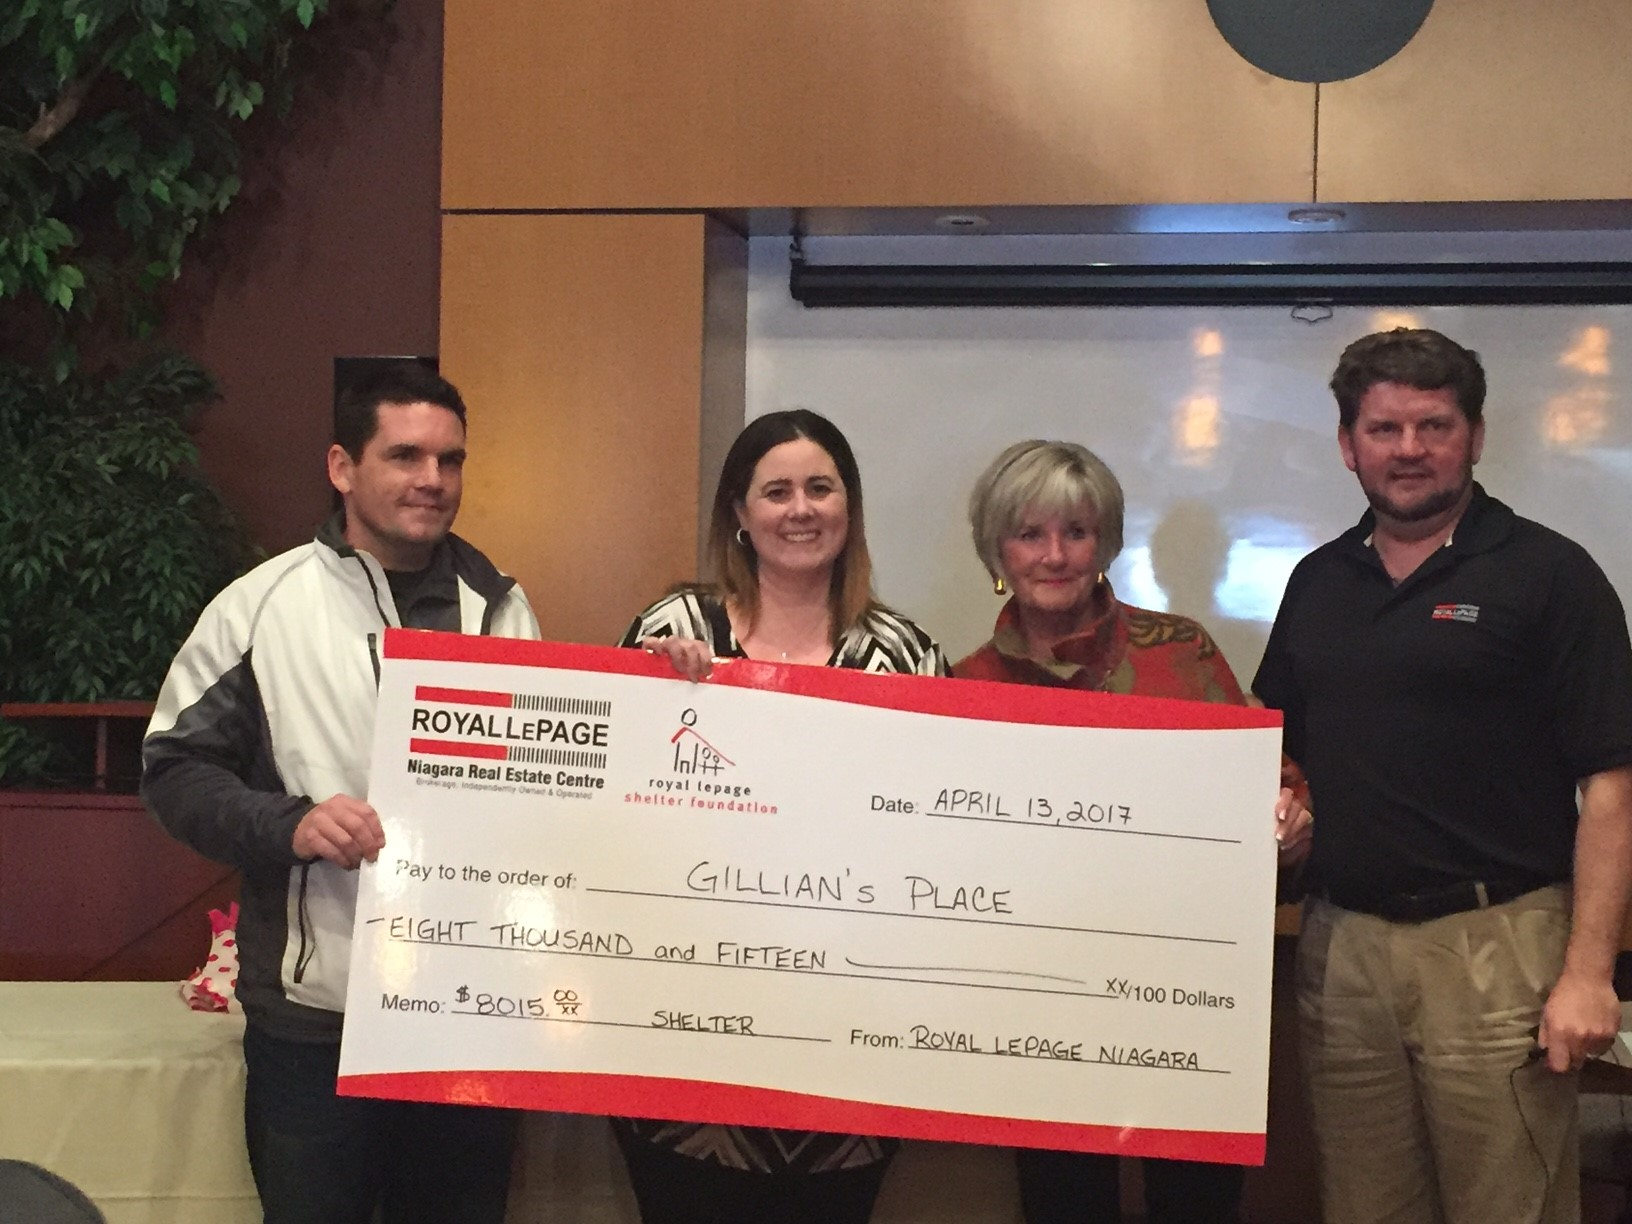 Royal LePage employees present cheque to Gillian's Place Manager.